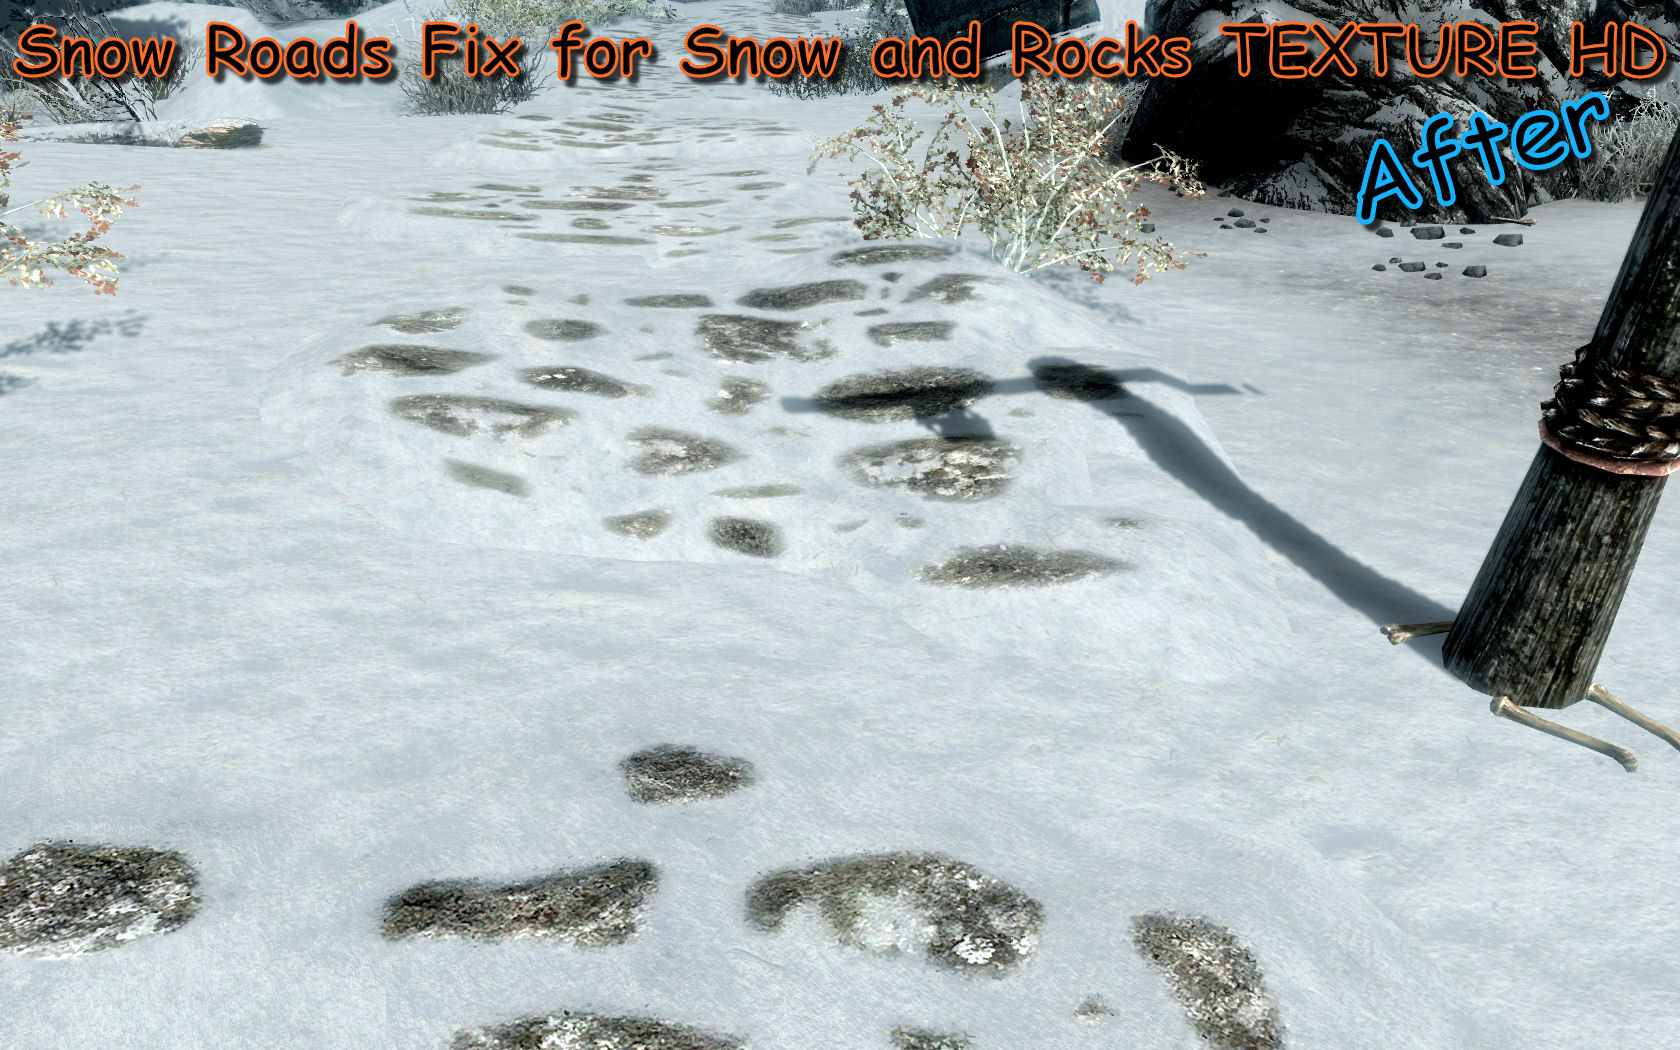 Snow Roads Fix for Snow and Rocks TEXTURE HD at Skyrim Nexus